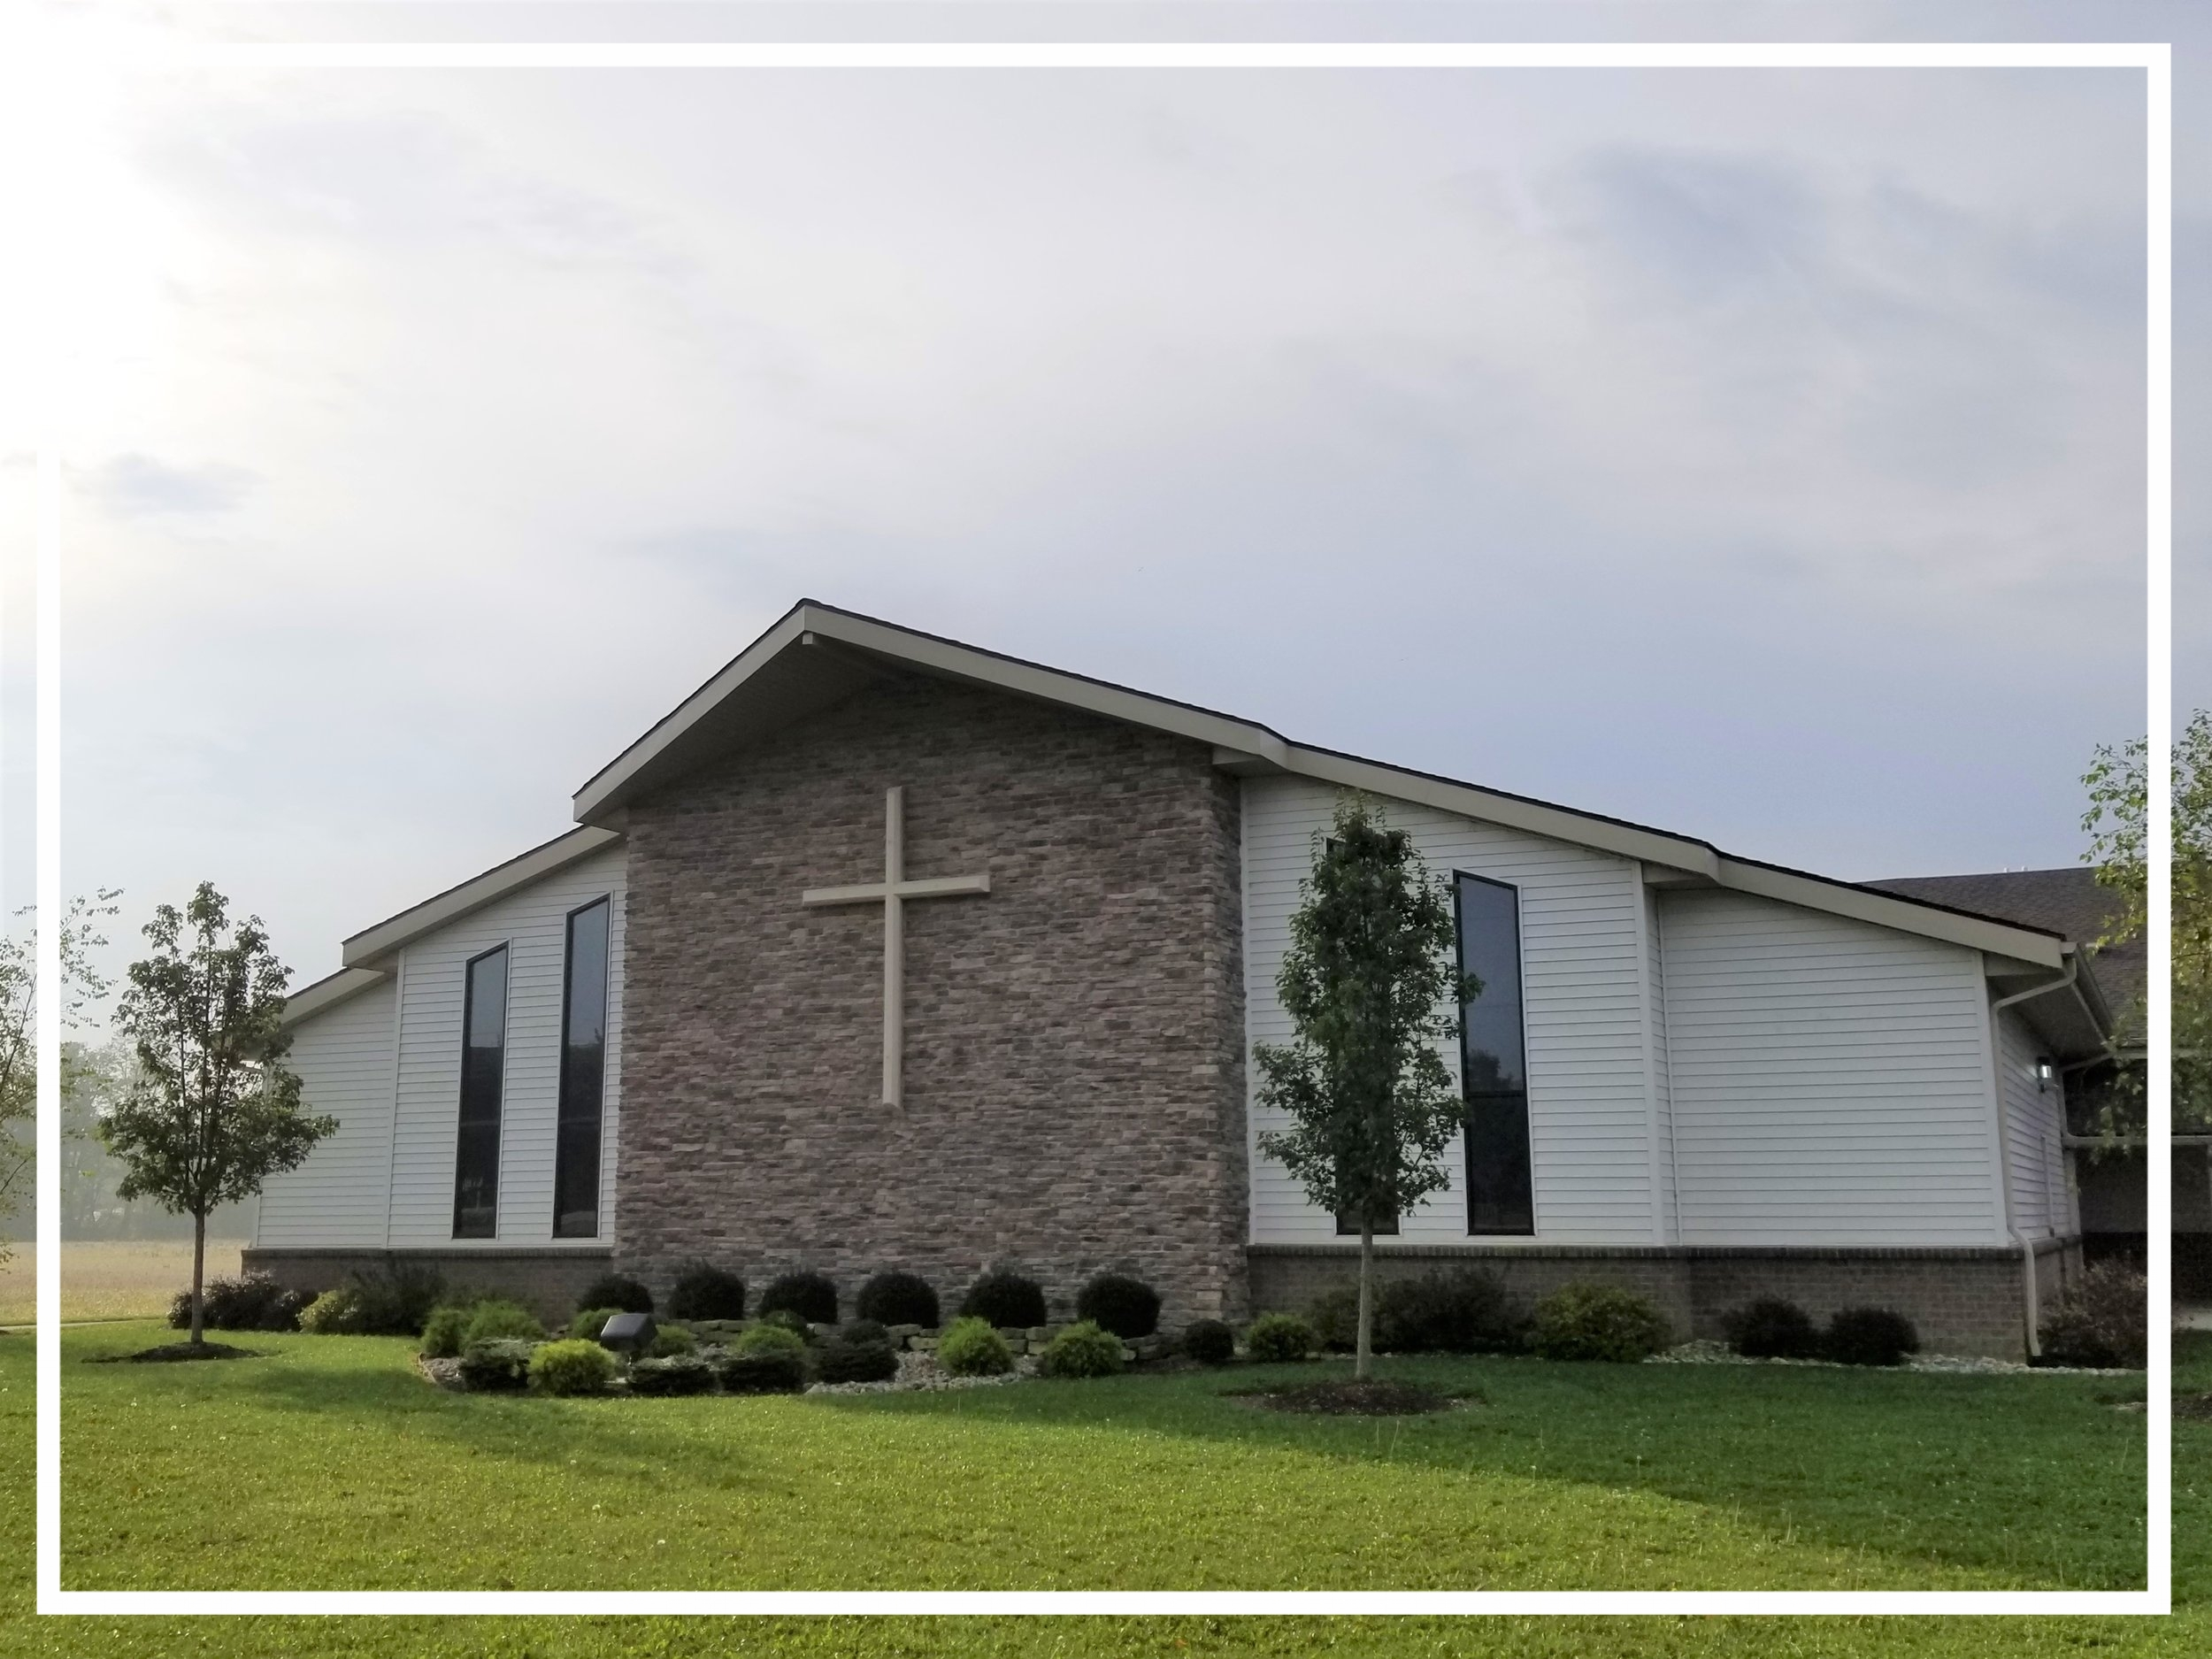 Worship Center - The Worship Center is the first building on your left as you enter the church parking lot from Flutter Road. This is where we gather for our worship service each Sunday at 10:30 am.